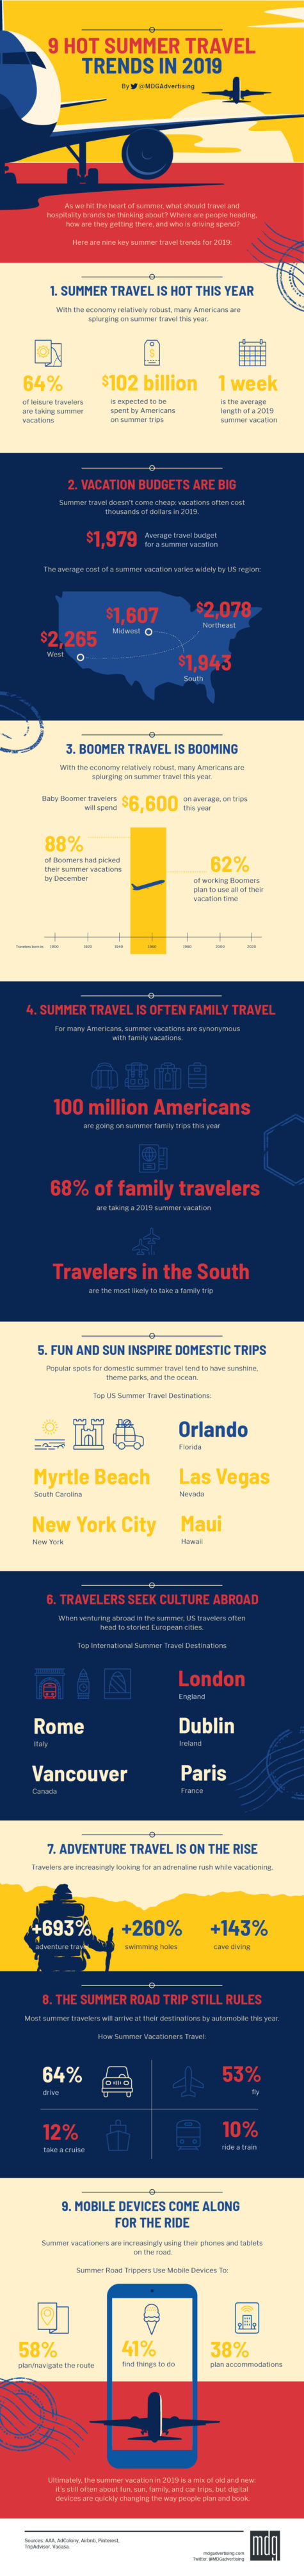 9 Hot Summer Travel Trends for 2019 [Infographic]